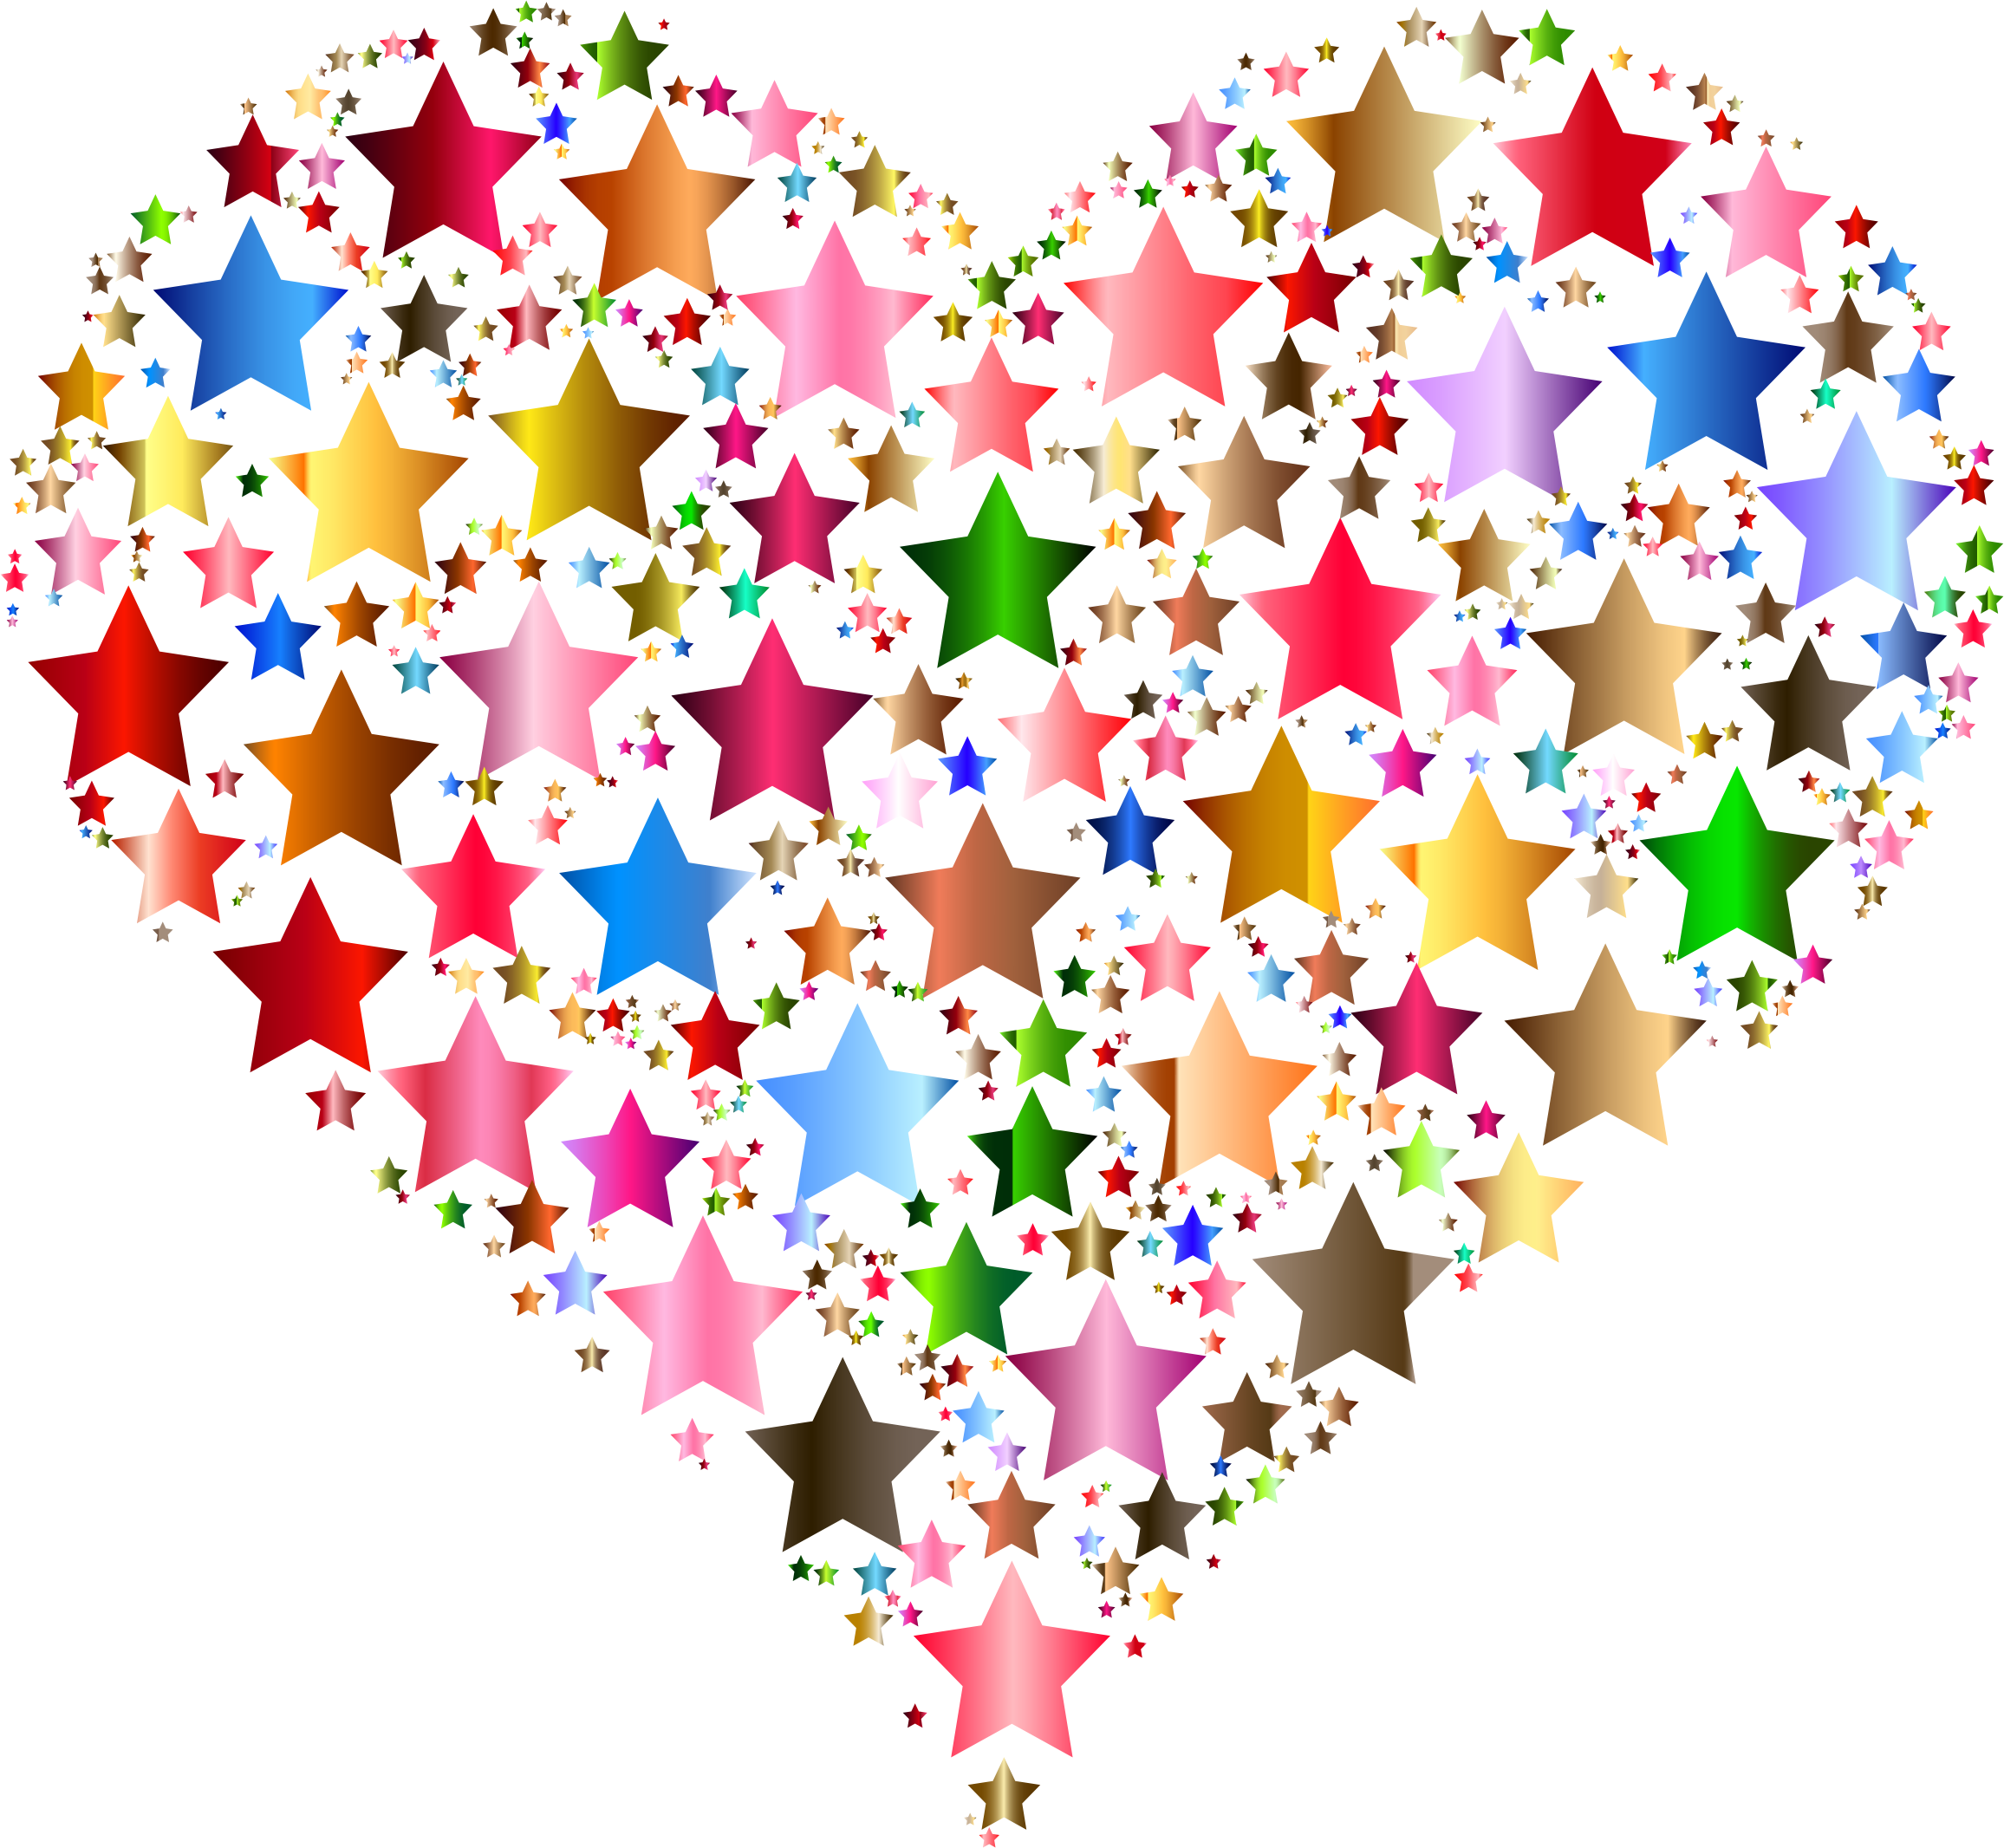 Smiley star clipart clip art freeuse download colourful stars | colorful stars clipart png - Clipground | facebook ... clip art freeuse download